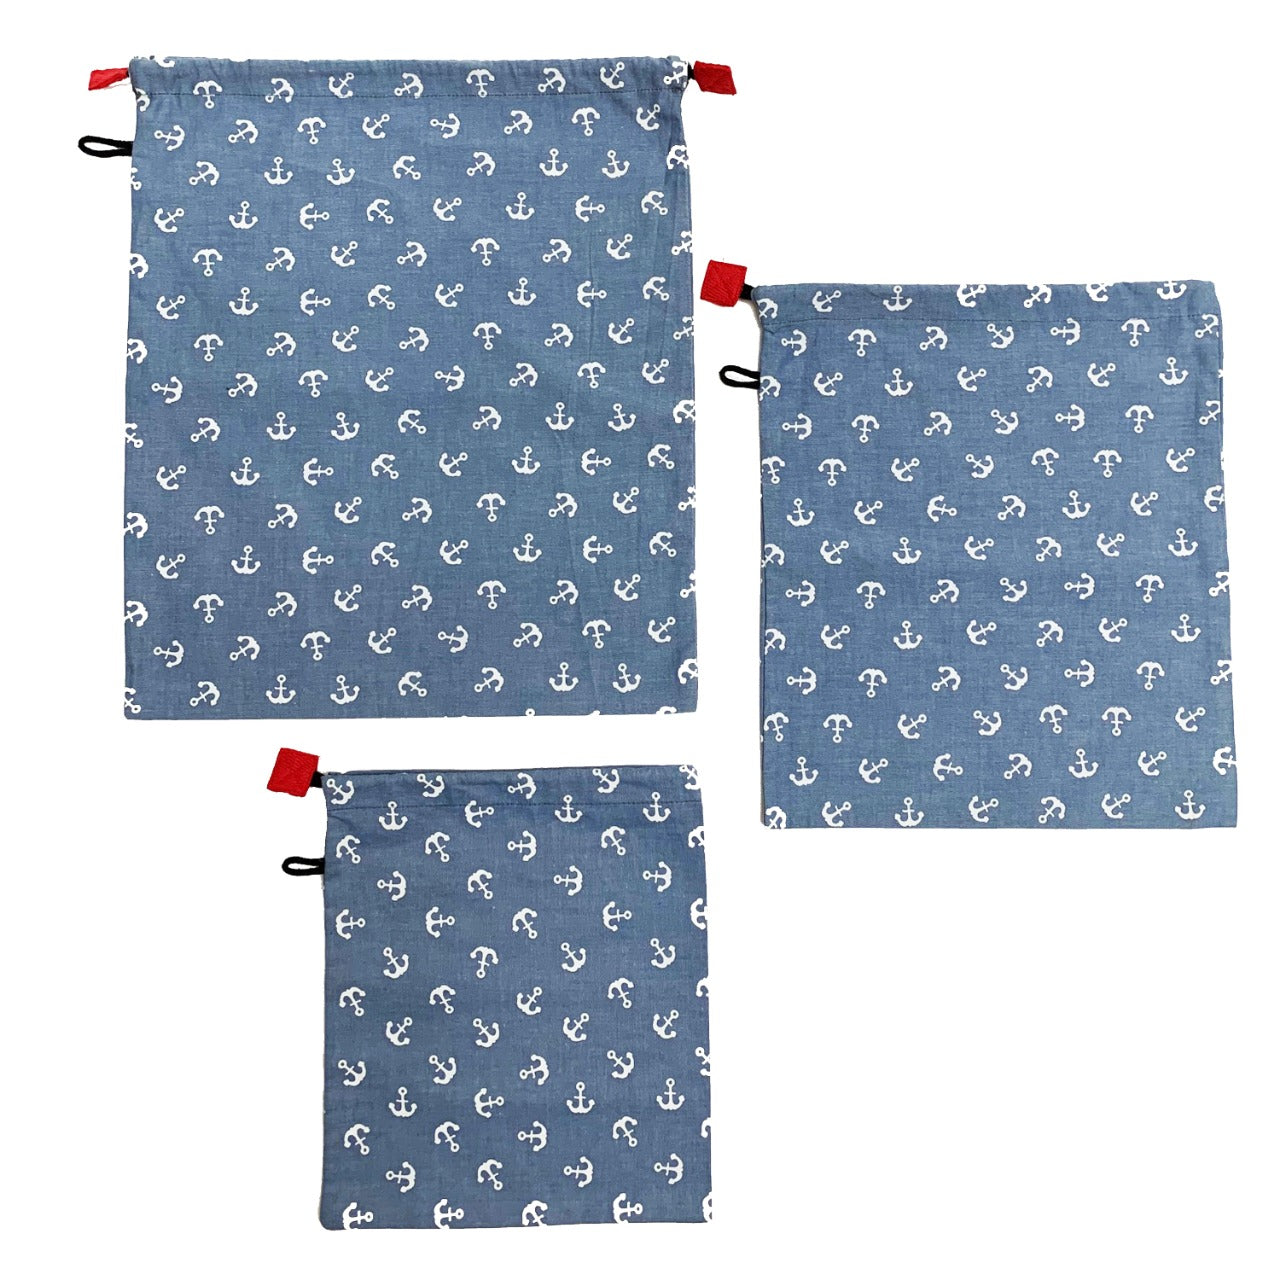 Produce Bags (Set of 3) - Blue Printed